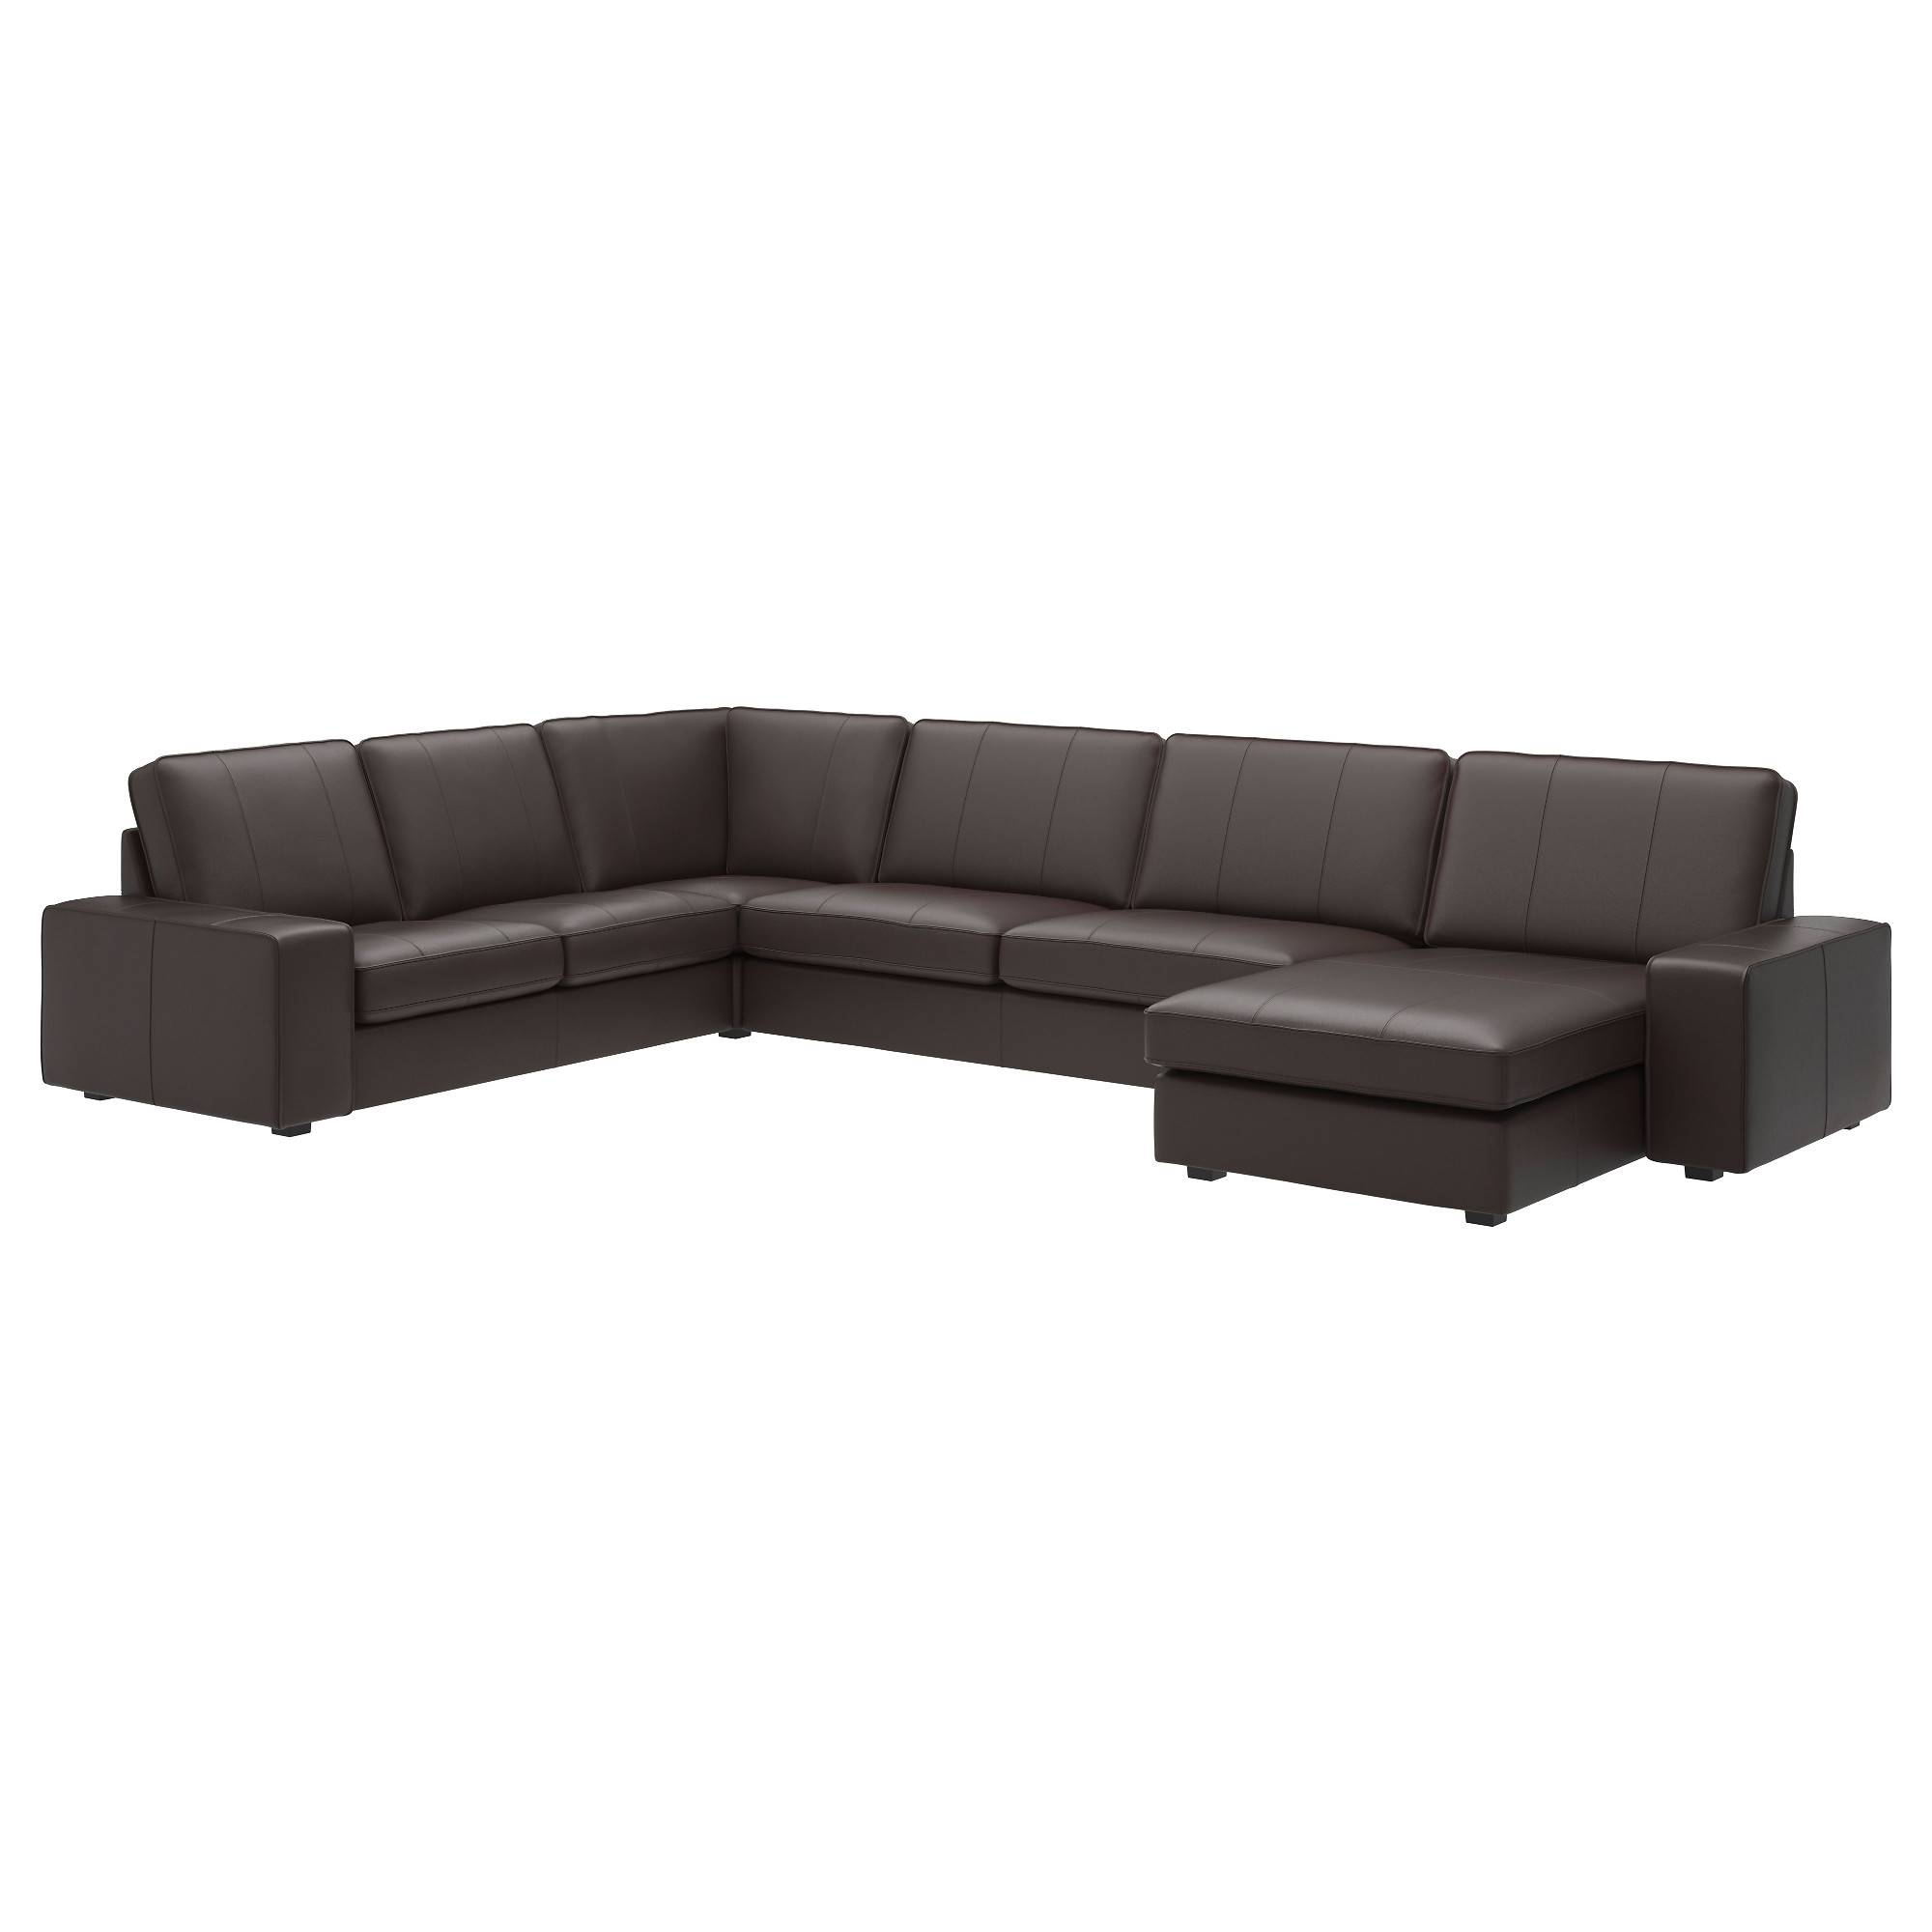 30 Best Collection Of Angled Chaise Sofa